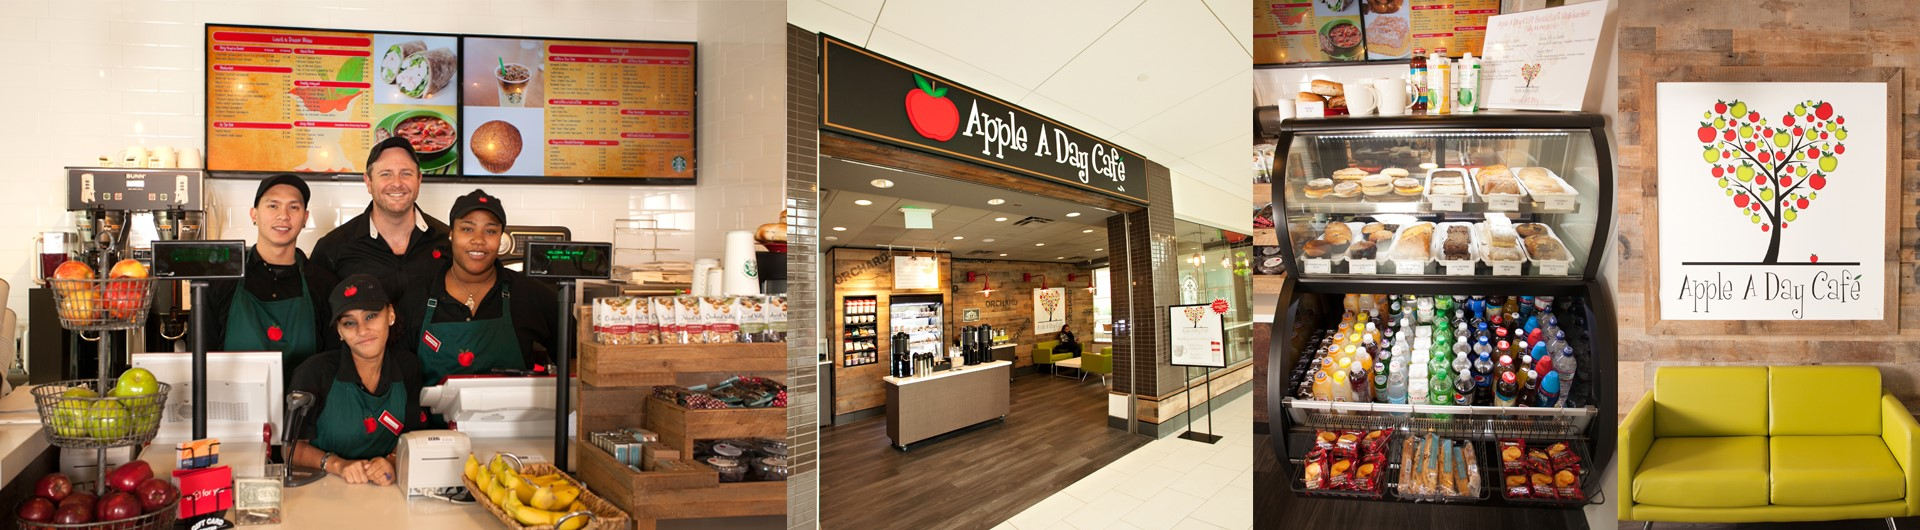 5-Apple-A-Day-Cafe